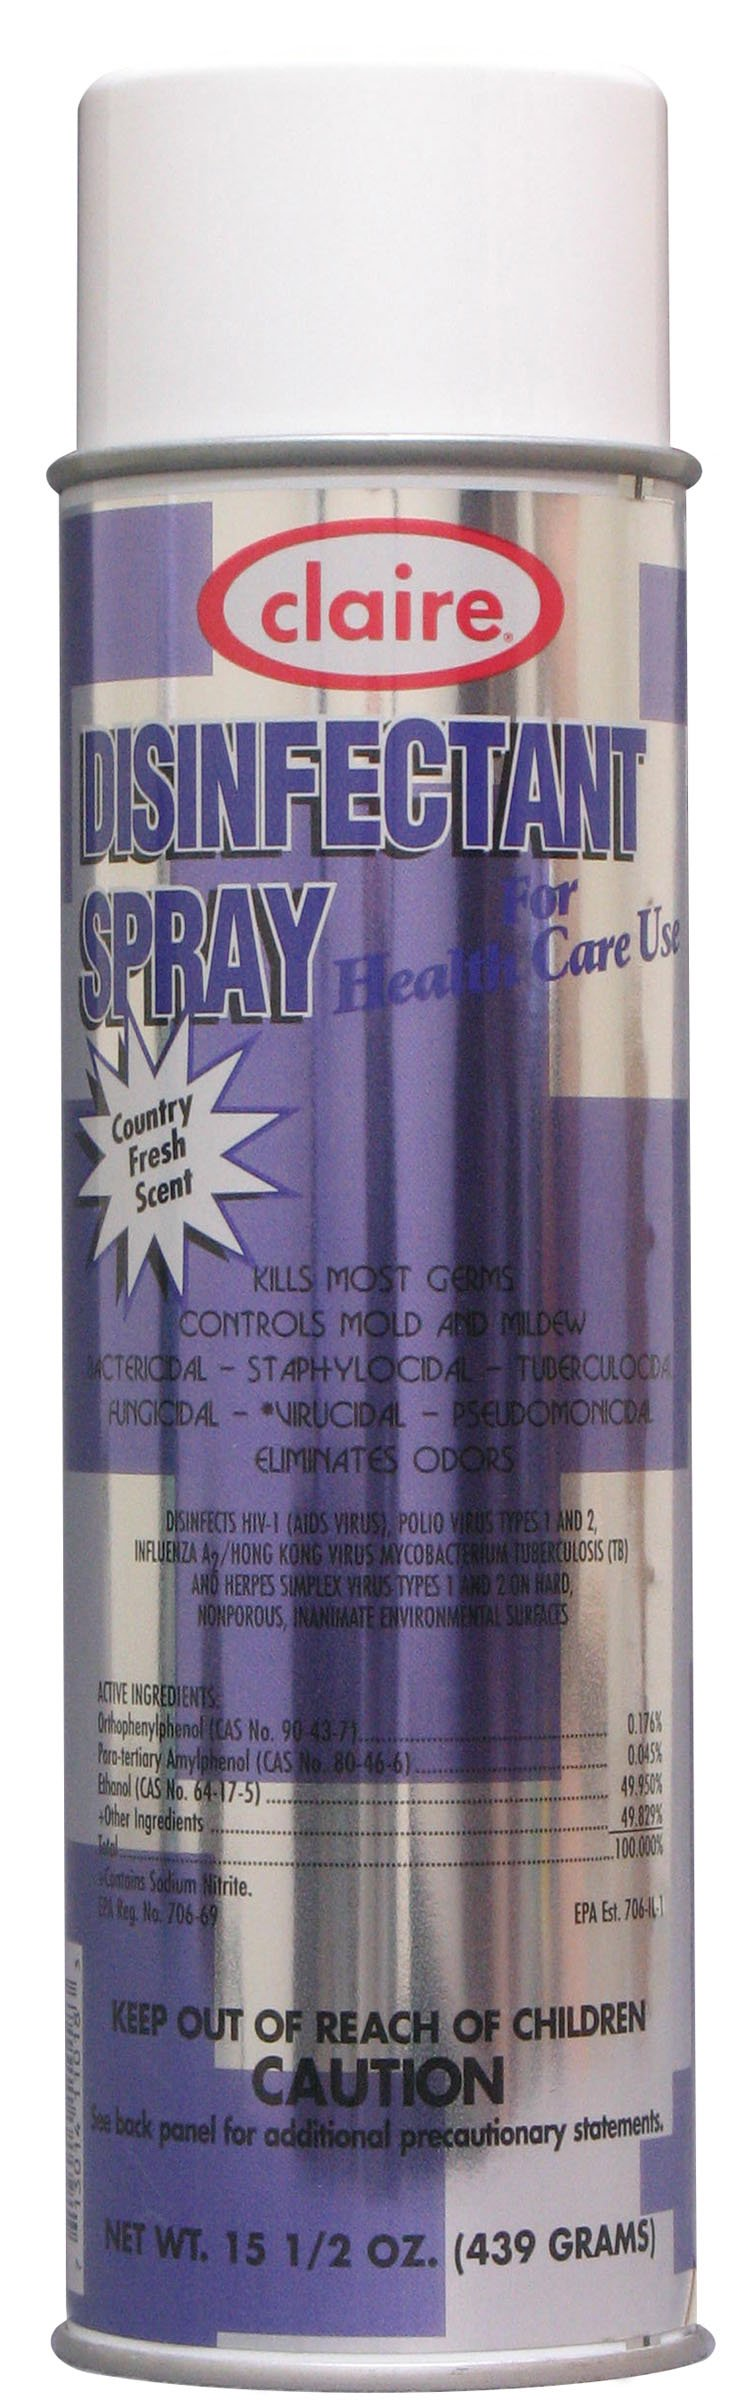 Claire C-018 15.5 Oz. Country Fresh Disinfectant Spray for Health Care Use Aerosol Can (Case of 12)